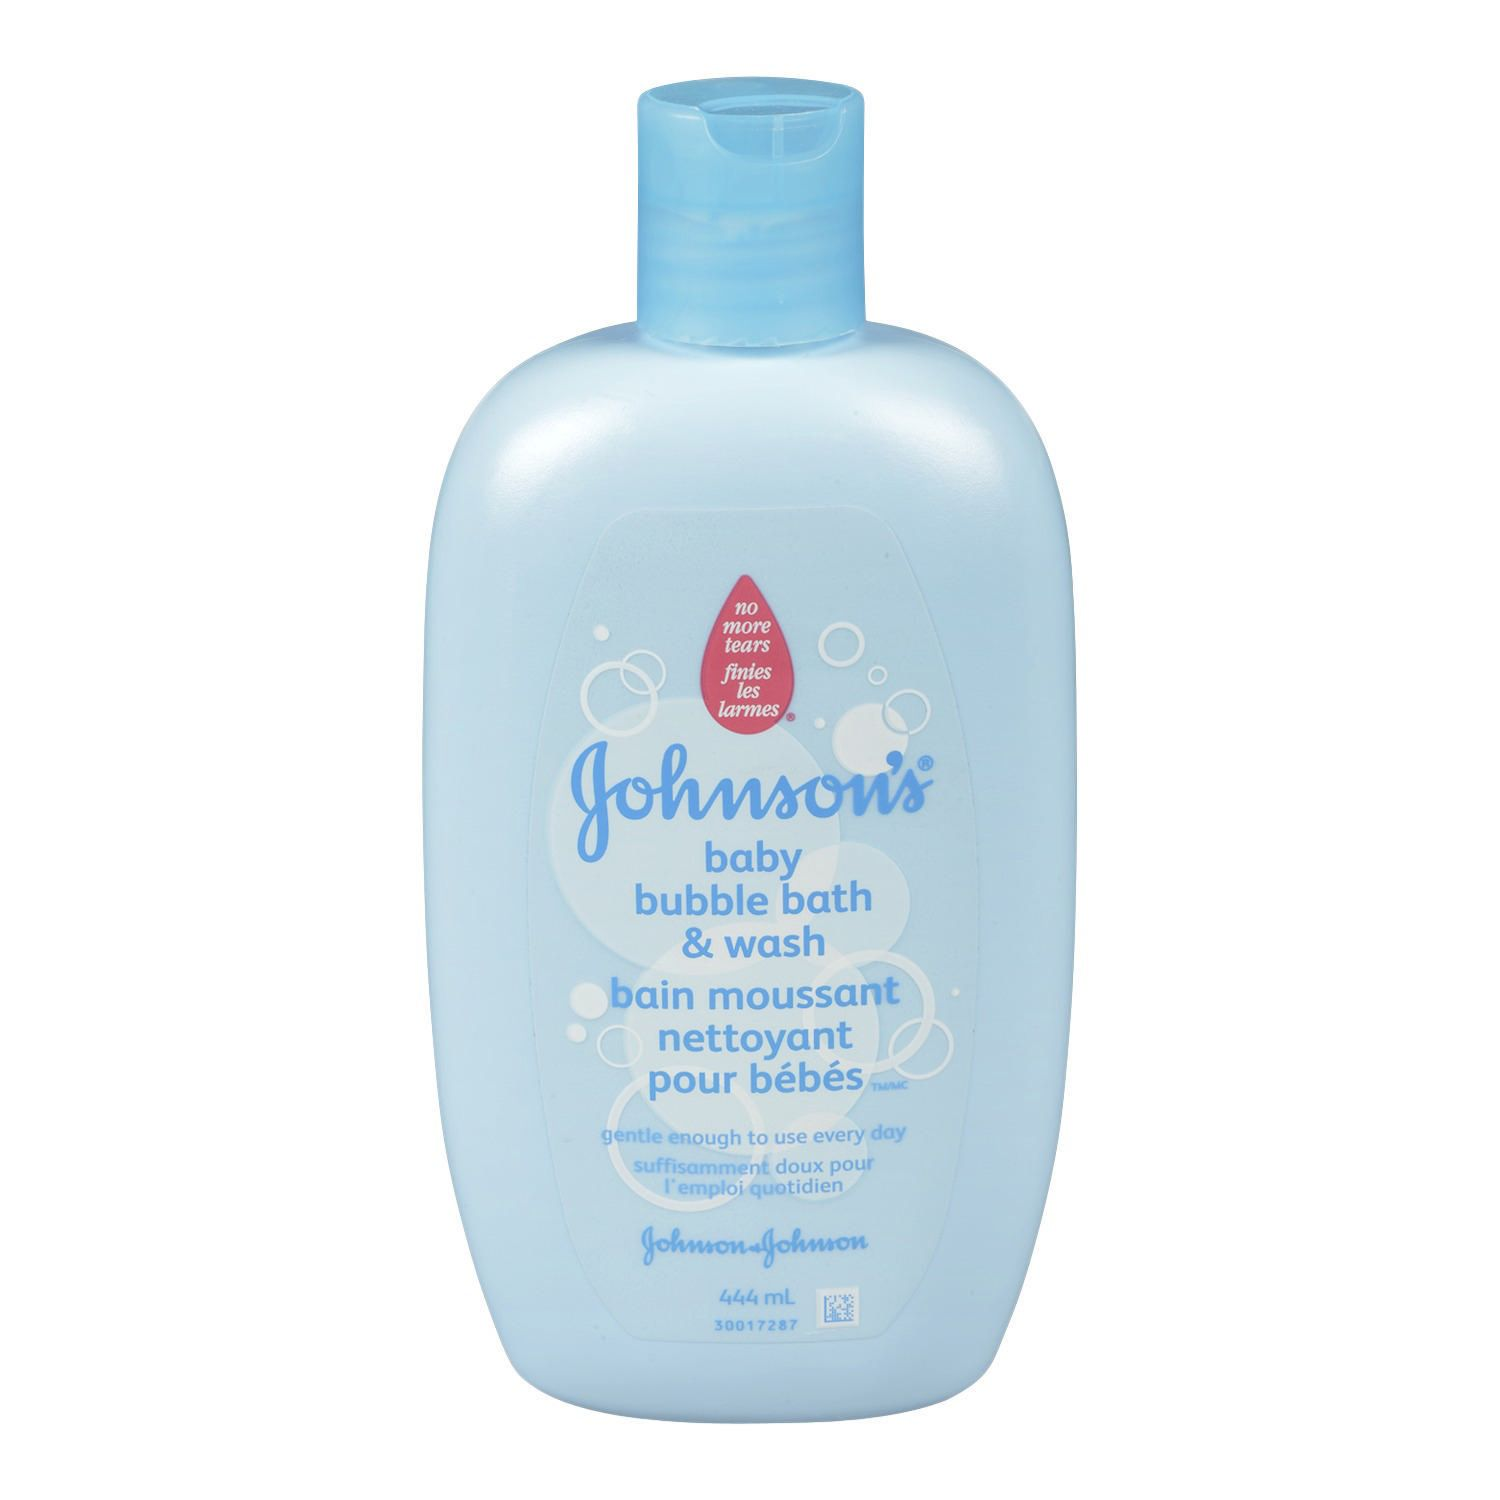 JOHNSON\'S® Baby Bubble Bath & Wash, 444 mL | Walmart Canada